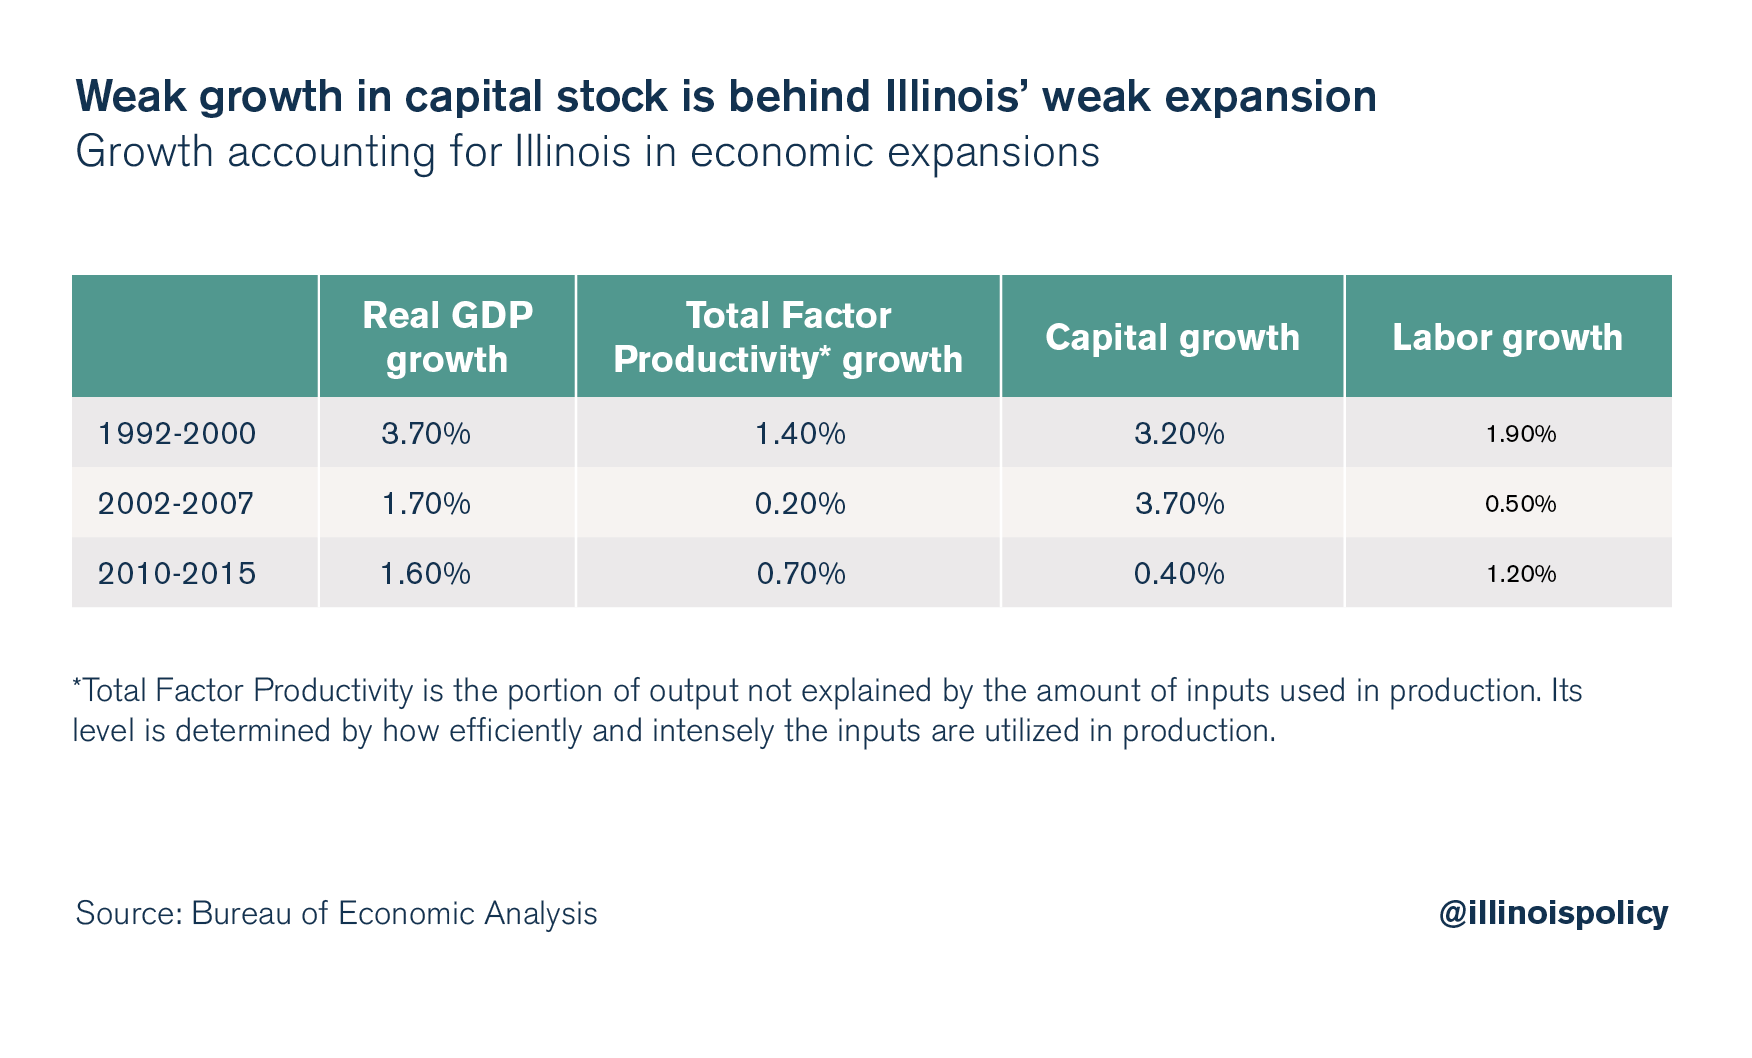 Weak growth in capital stock is behind Illinois' weak expansion